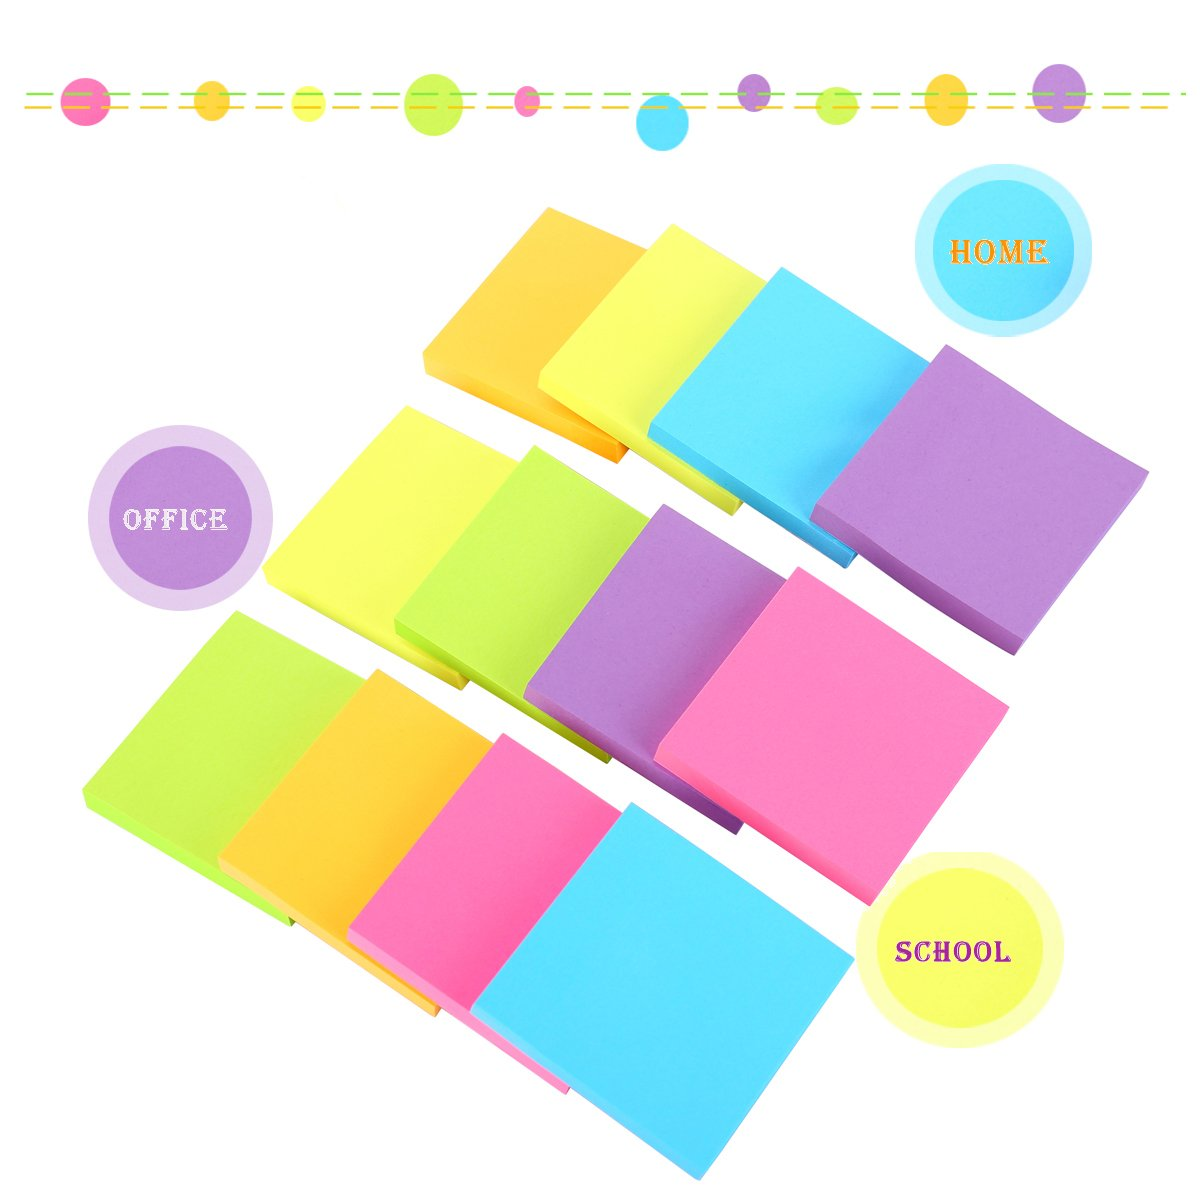 Sticky Notes, 3 in x 3 in, 12 Pads/Pack,100 Sheets/Pad, 6 Bright Colors Self-Stick Notes for Home,Office, School, Easy Post. by ERBAO (Image #5)